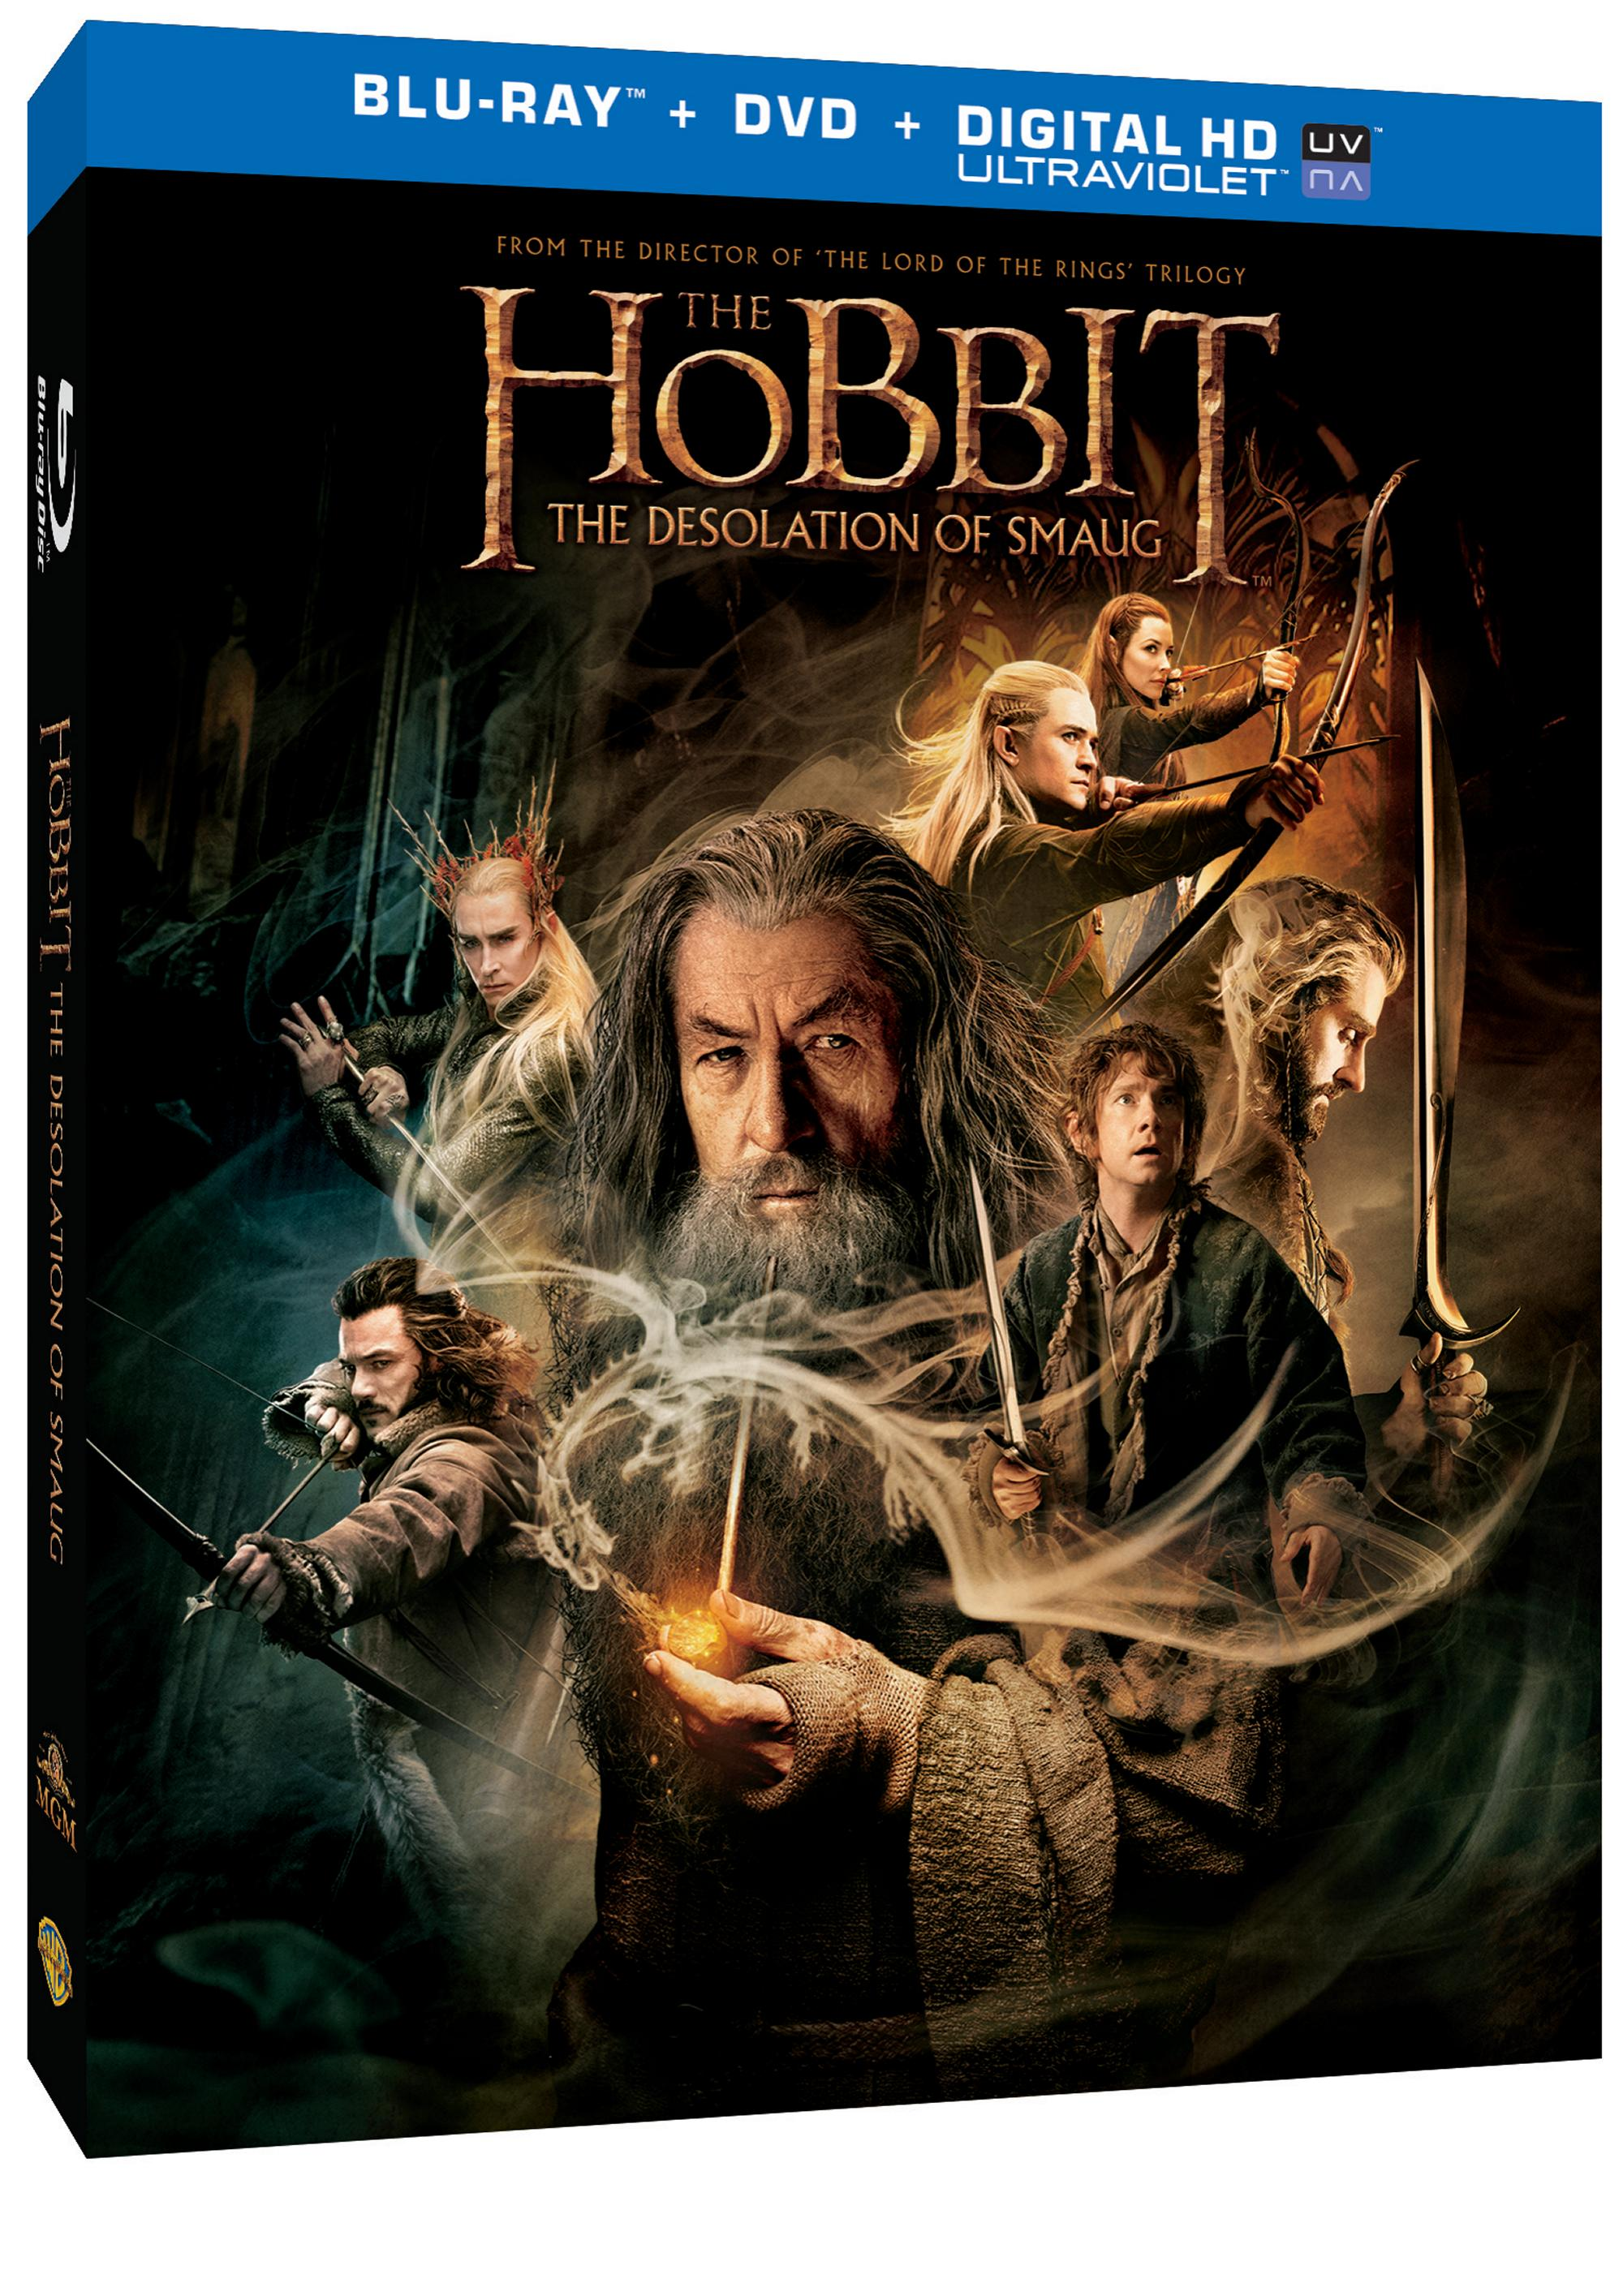 The Hobbit The Desolation of Smaug Blu-ray